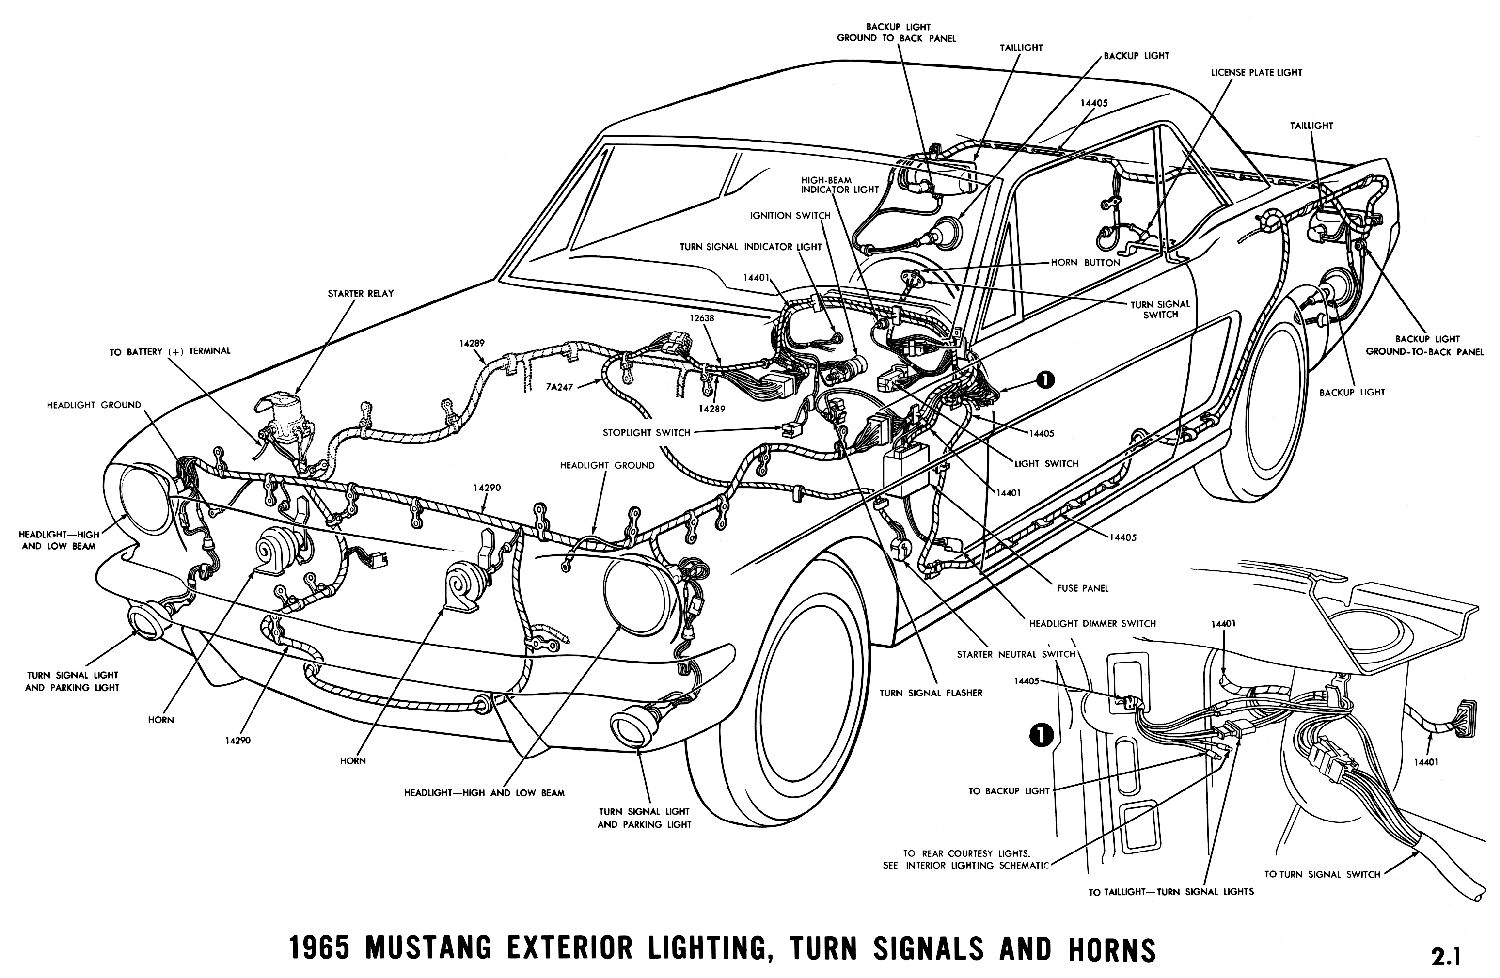 1965 mustang exterior lighting, turn signals and horns pictorial or  schematic